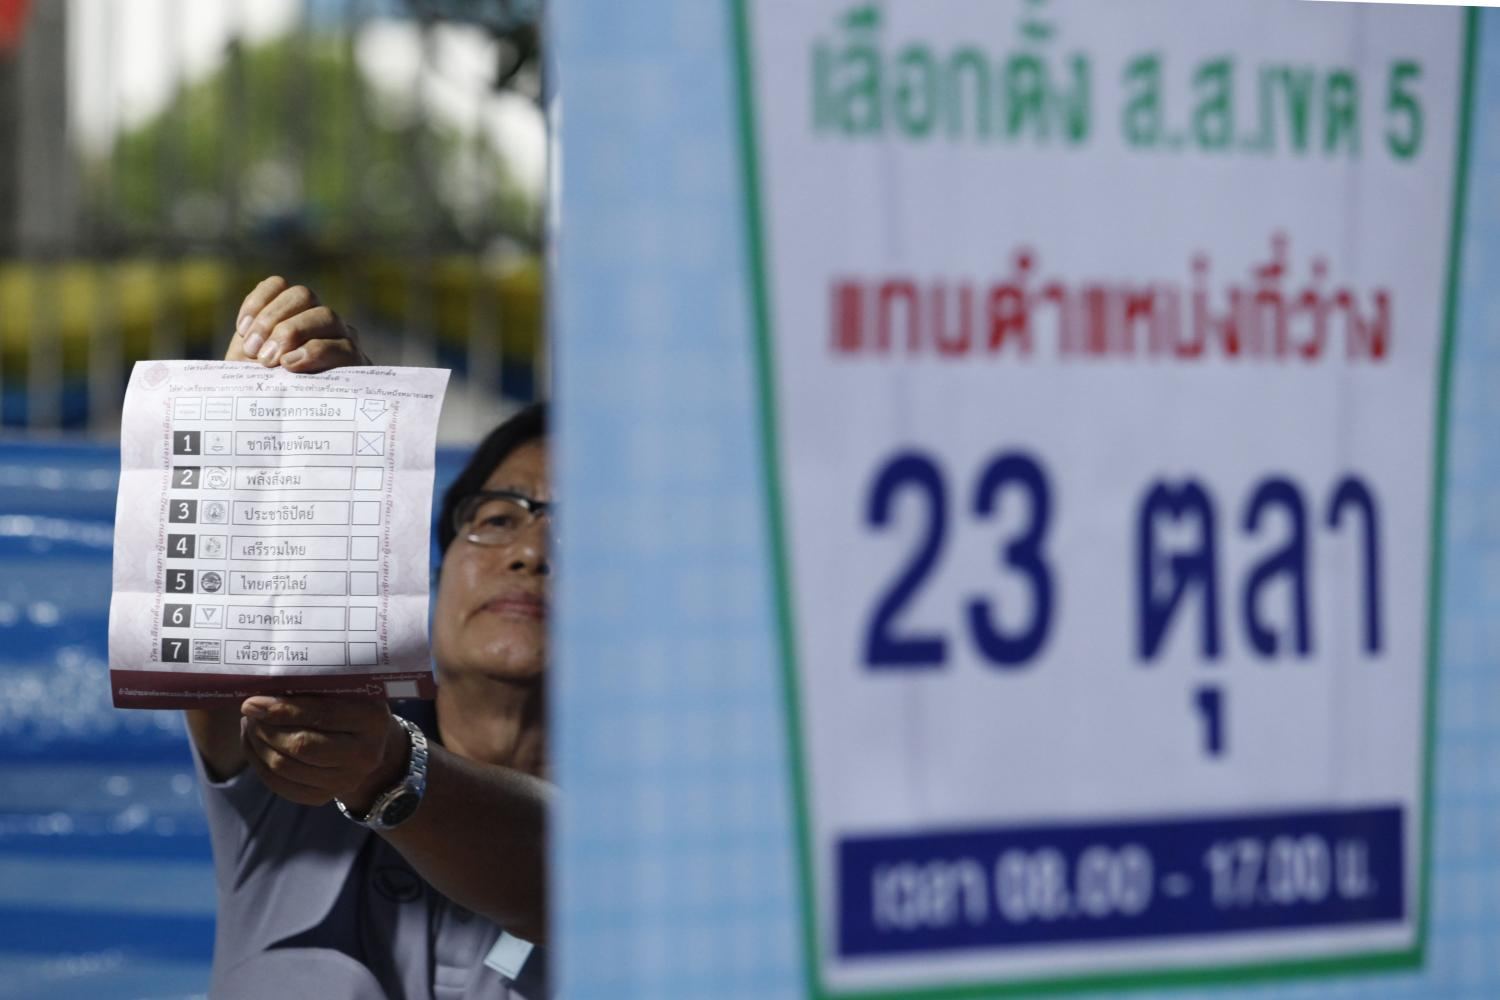 Election staff show a marked ballot at the 2nd polling station in Wat Rai Khing, in the by-election in Nakhon Pathom's Constituency 5. Wichan Charoenkiatpakul